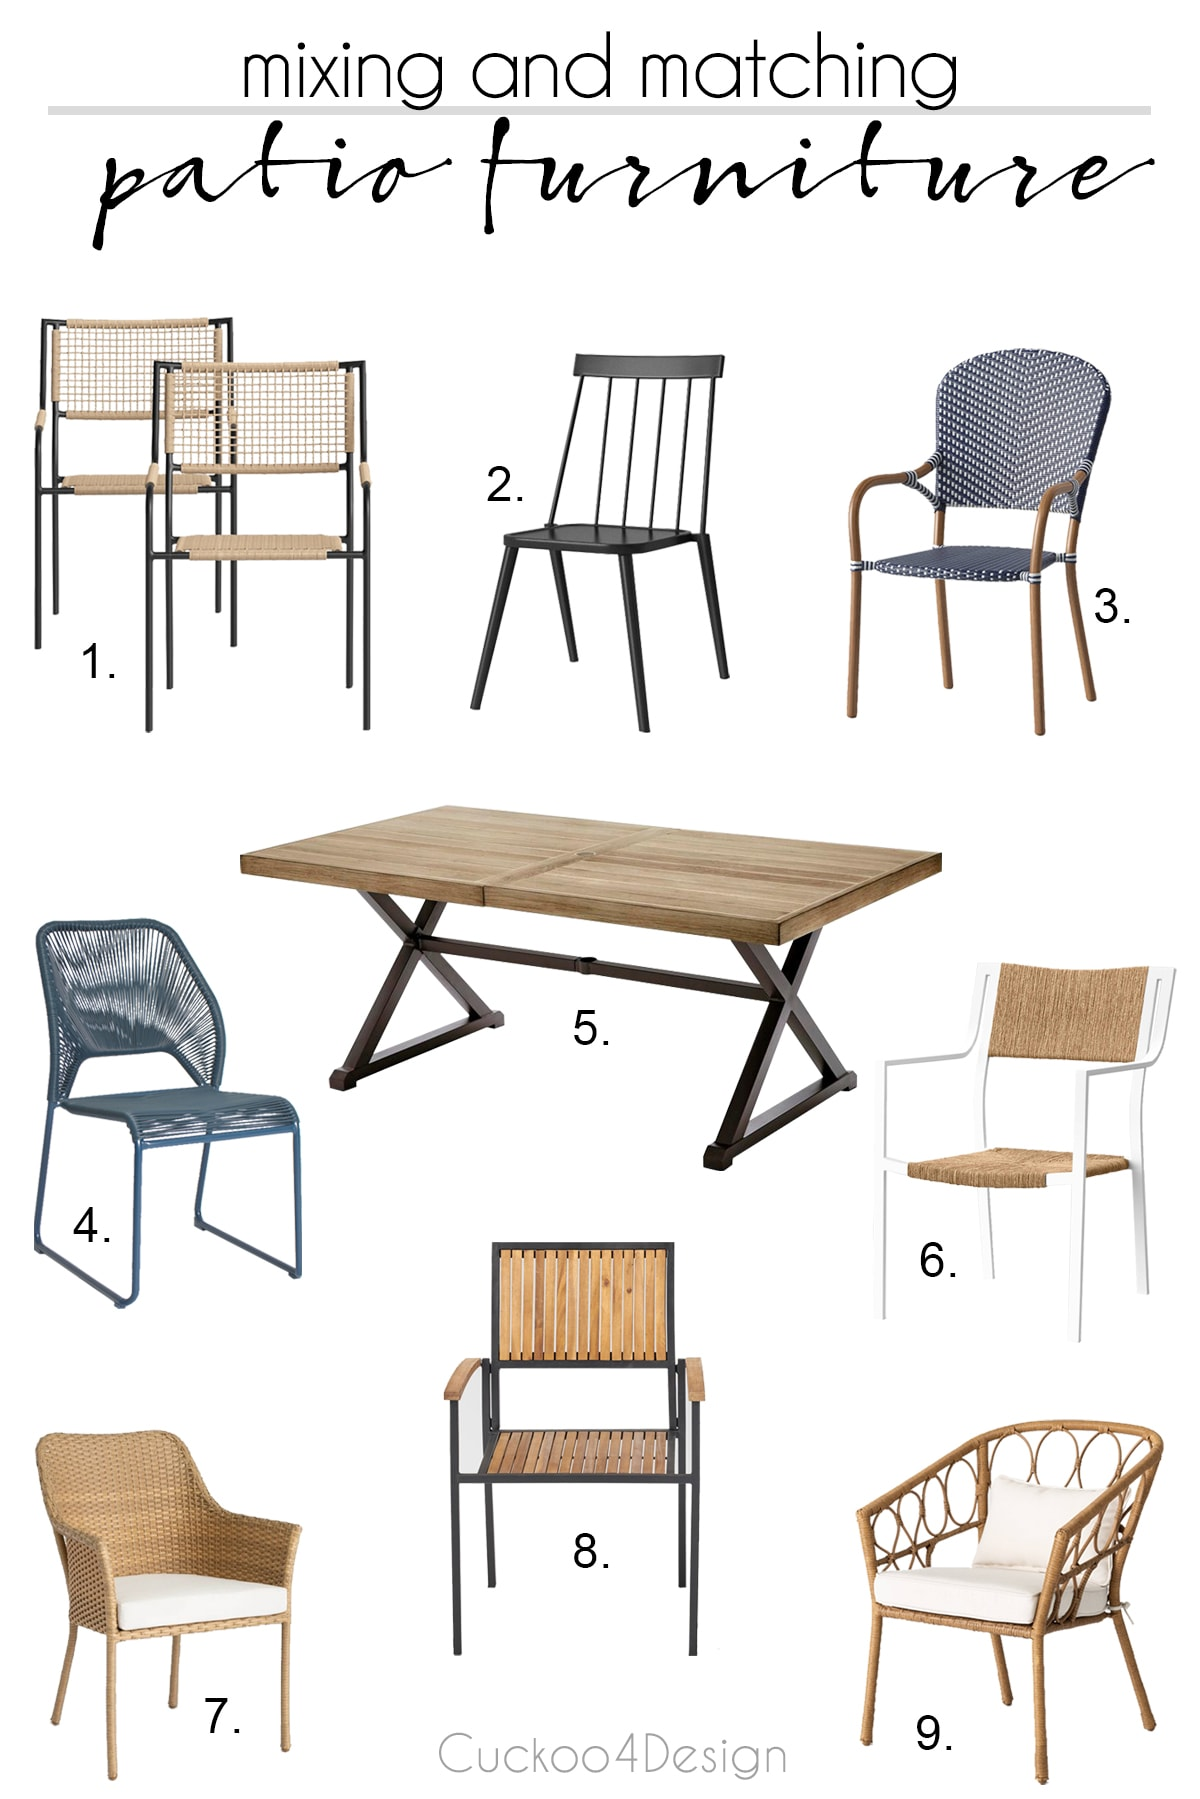 mixing and matching different patio furniture